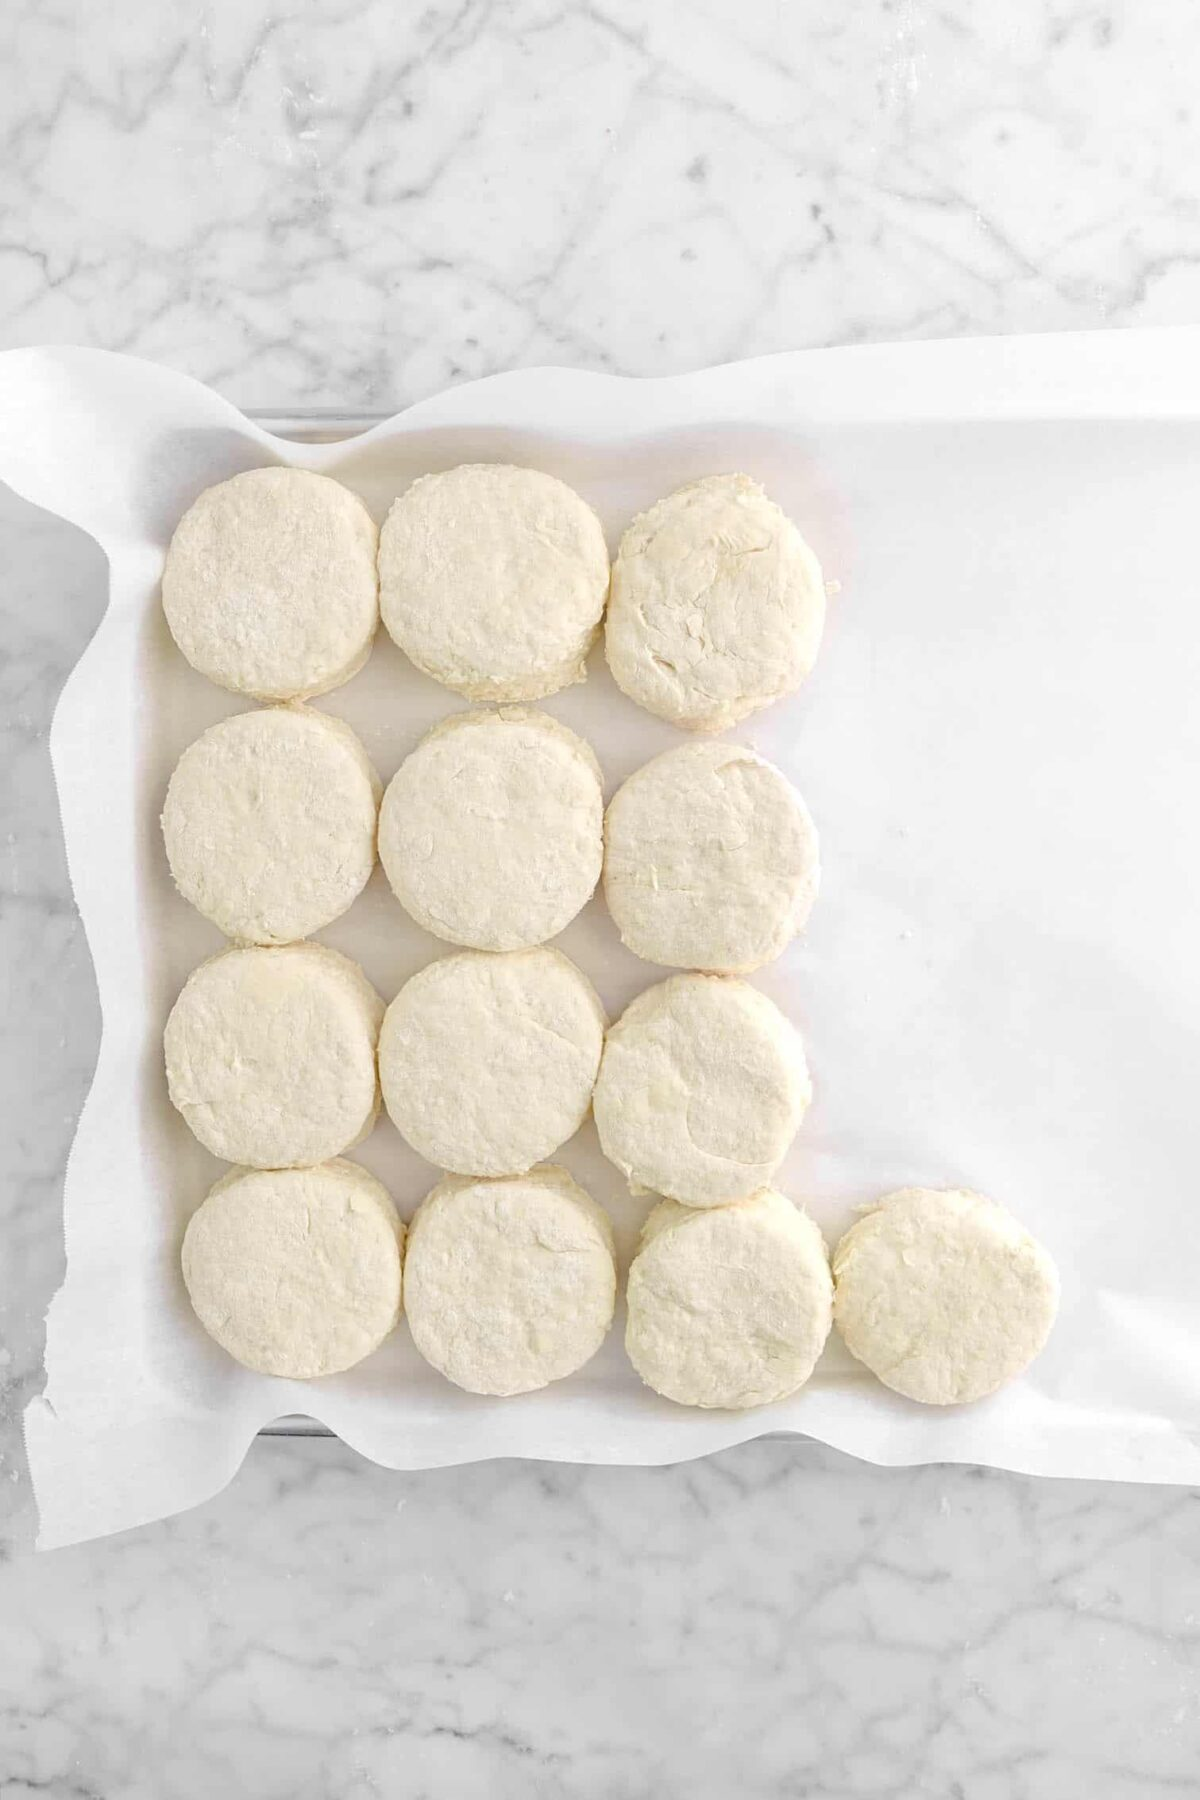 biscuits in a lined sheet pan